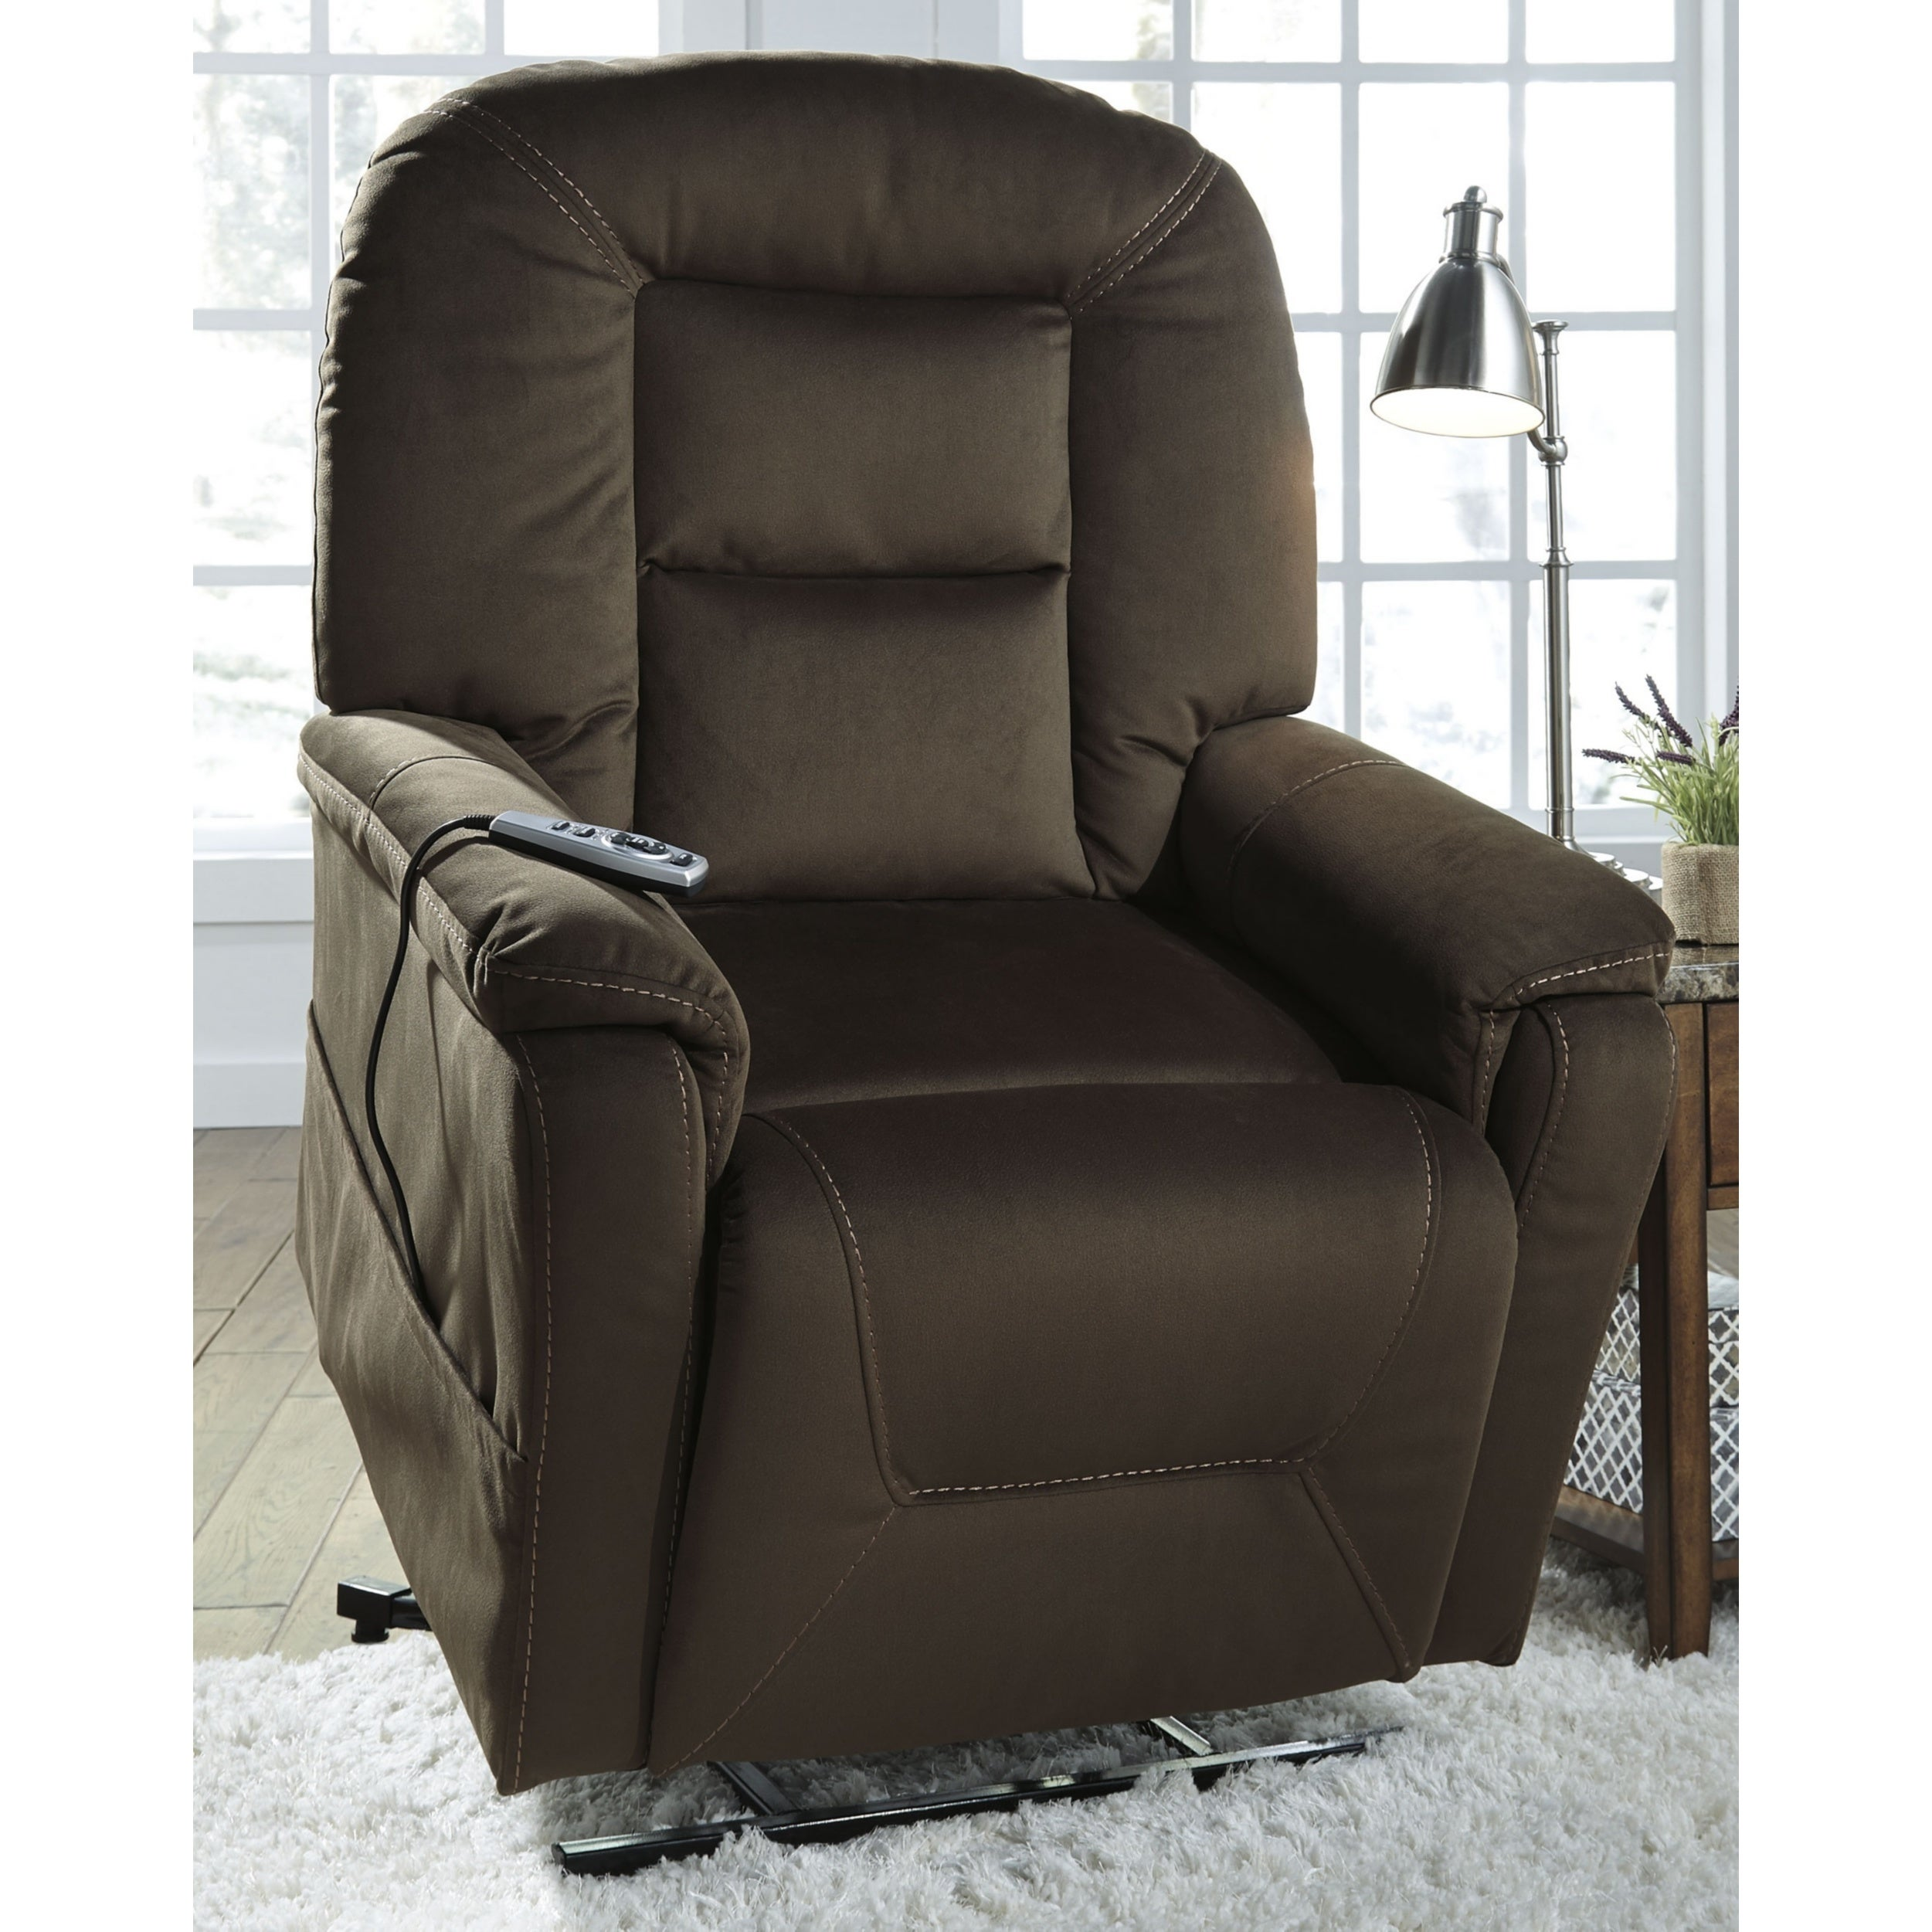 Enjoyable Signature Design By Ashley Samir Brown Power Lift Recliner Interior Design Ideas Inesswwsoteloinfo